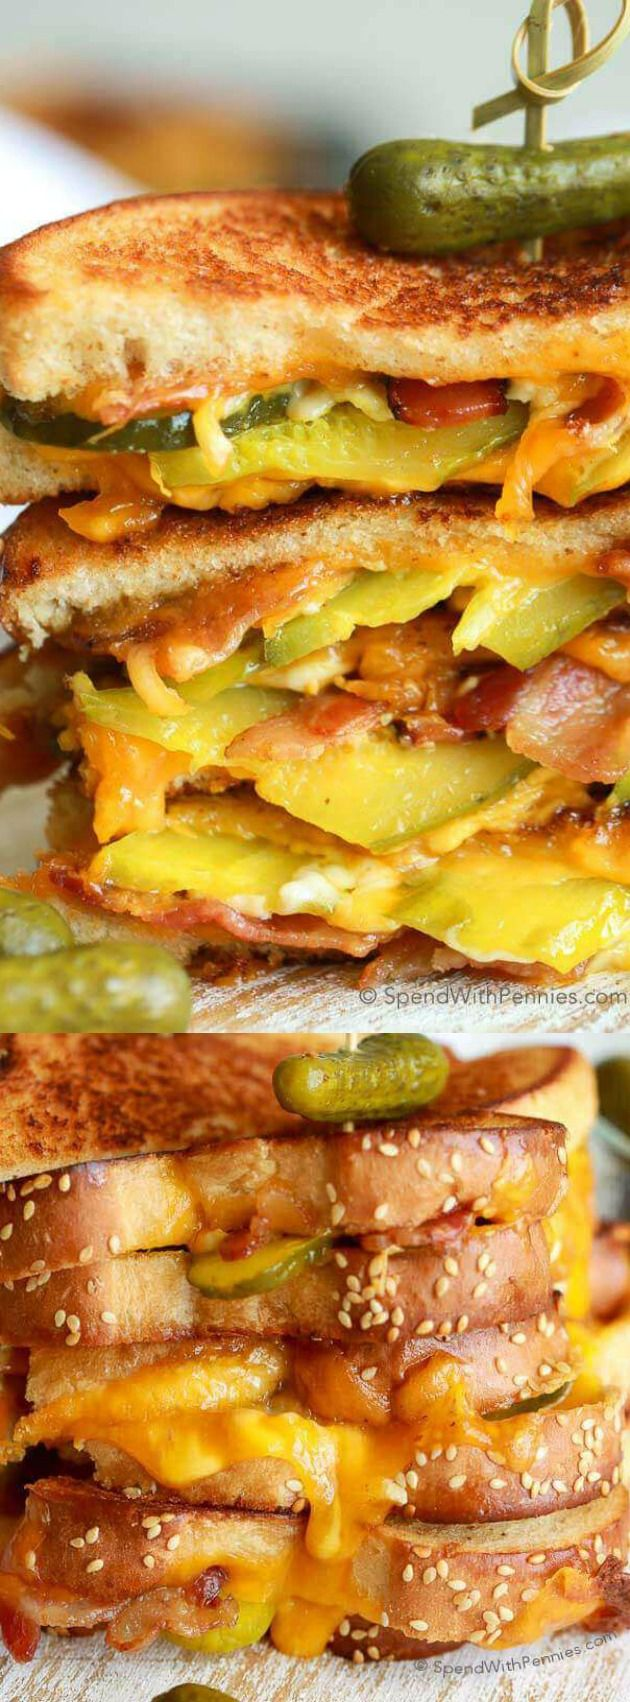 This Dill Pickle Bacon Grilled Cheese recipe from Holly over at Spend with Pennies is seriously the ULTIMATE comfort food!